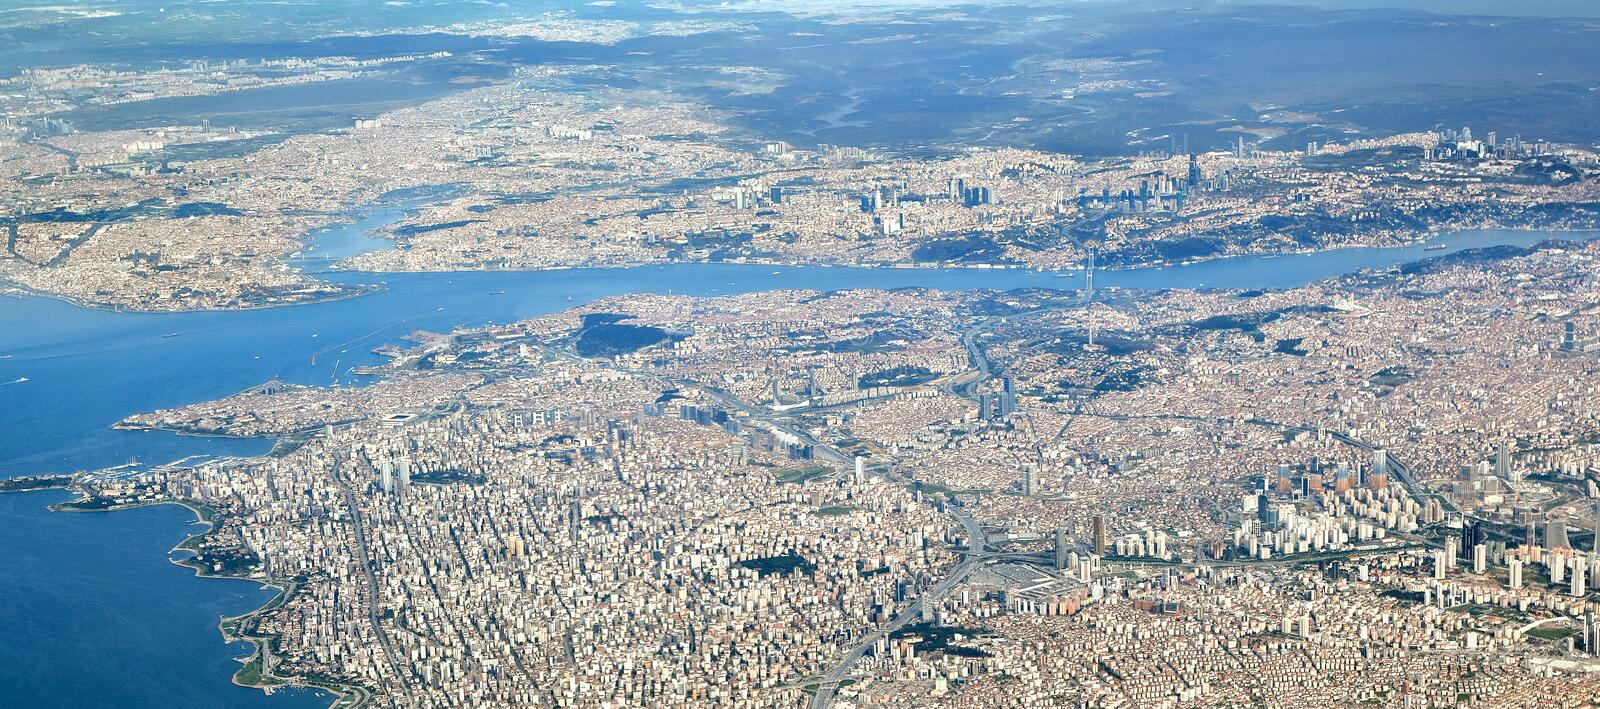 Istanbul, Aerial View. View of both European and Asian side as well as the Golden Horn, Bosporus straits and Sea of Marmara stock photos